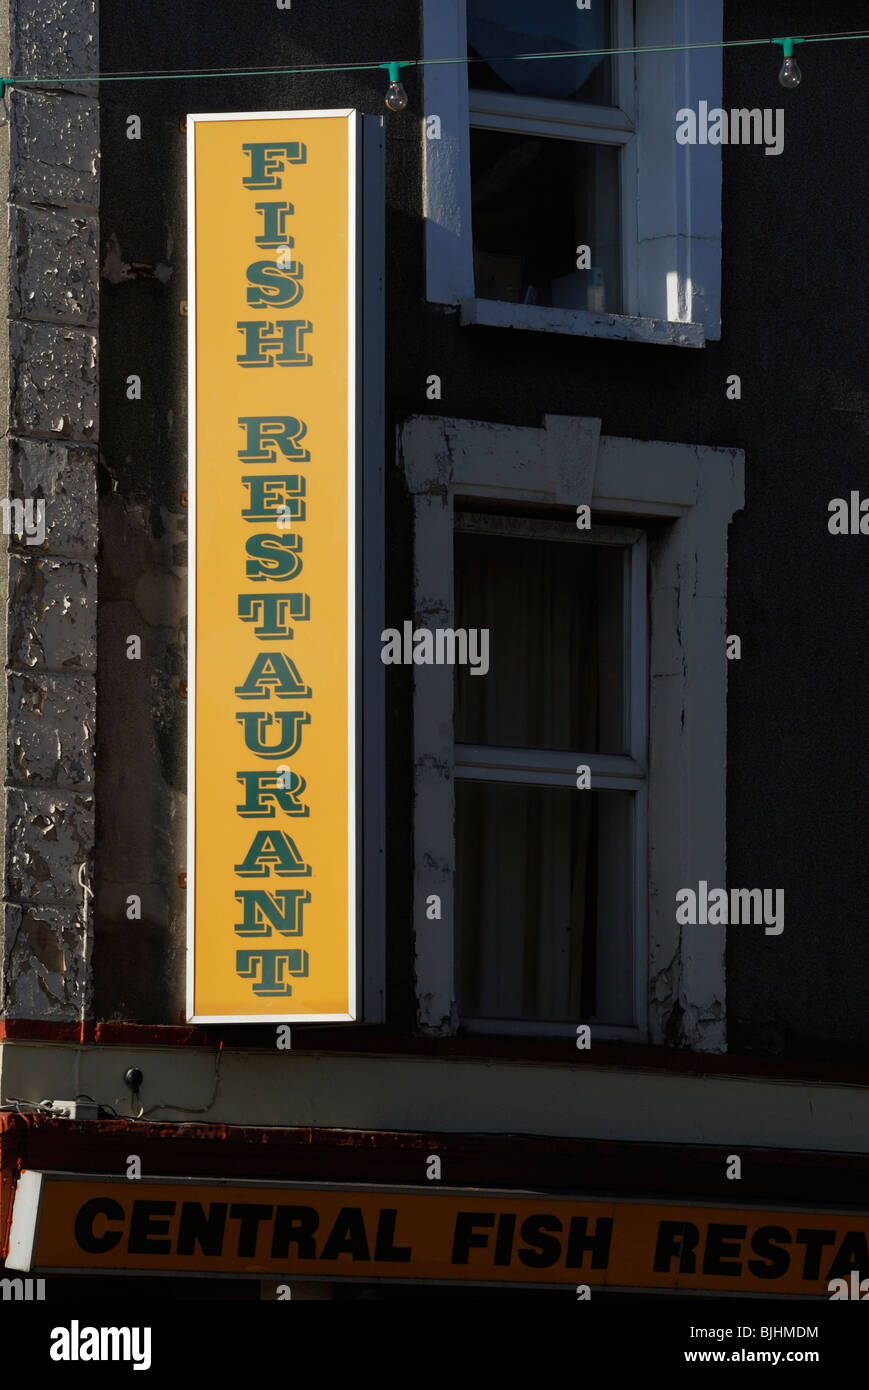 Fish restaurant sign spotlit by sunshine on a building with peeling paintwork, Aberystwyth, Wales. - Stock Image